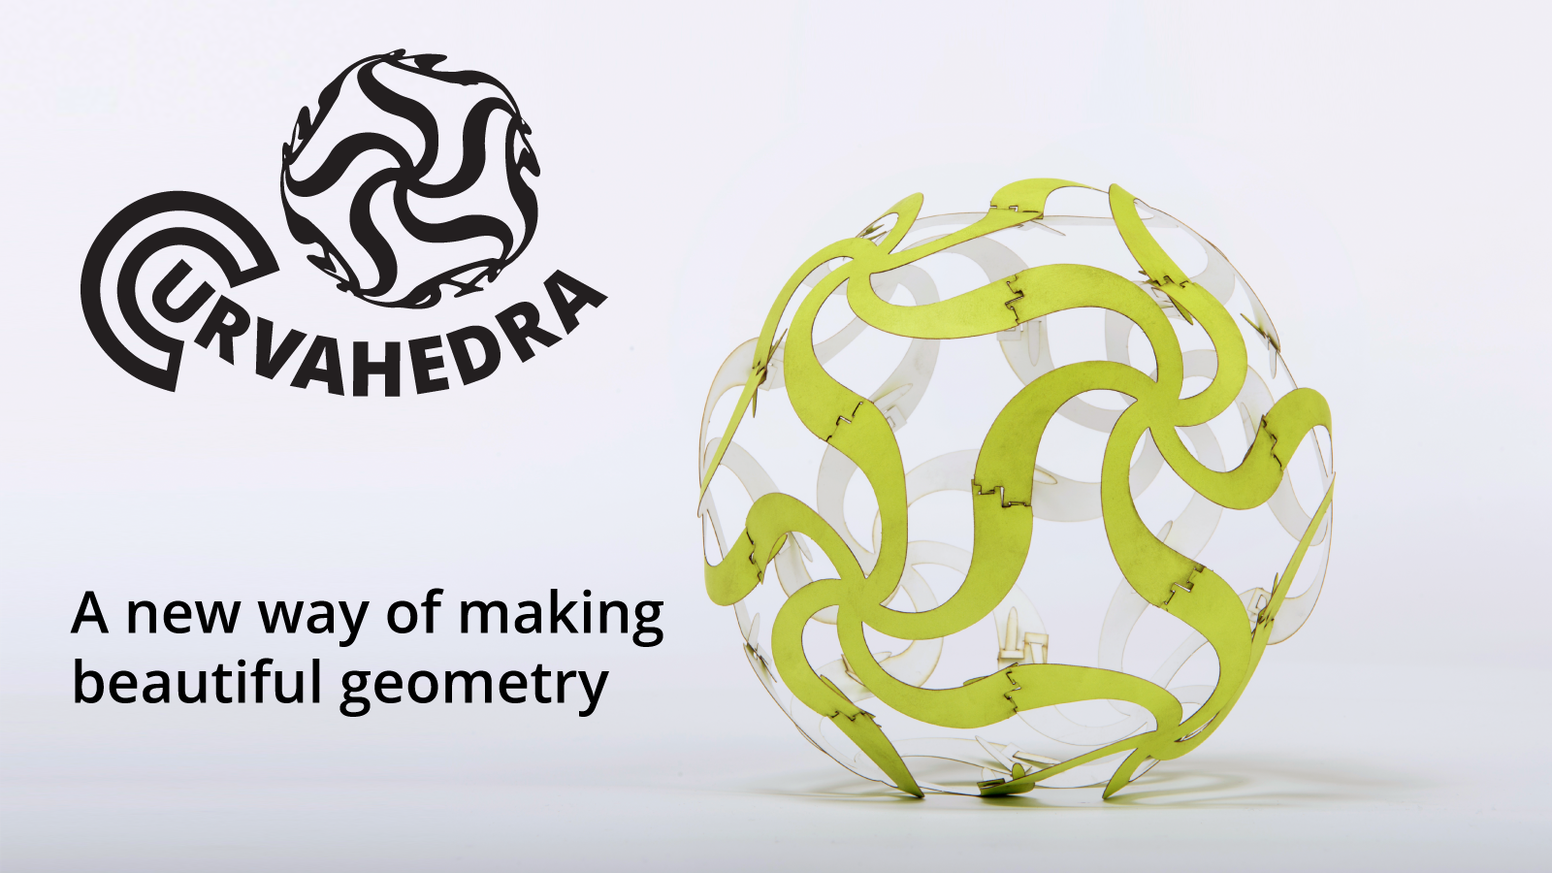 Curvahedra has evolved and now has stronger connectors and is made from more durable material.